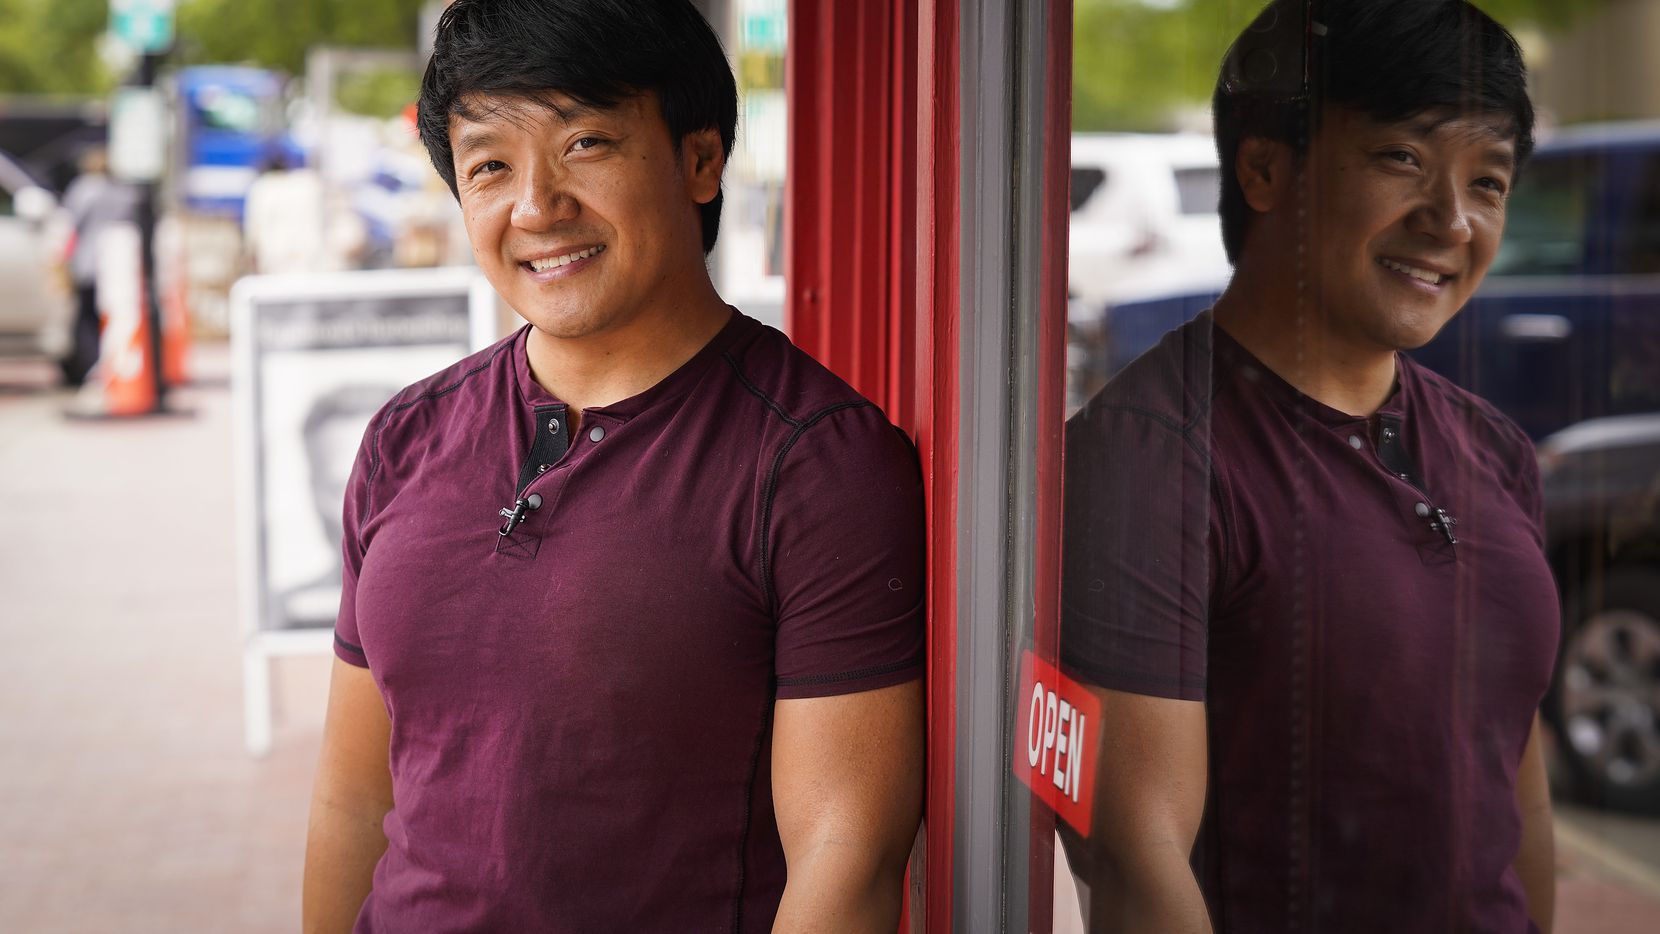 YouTube personality Mike Chen ate at least a dozen Whataburger menu items in a video he posted Sept. 5, 2021. Spoiler alert: He didn't love all of it.